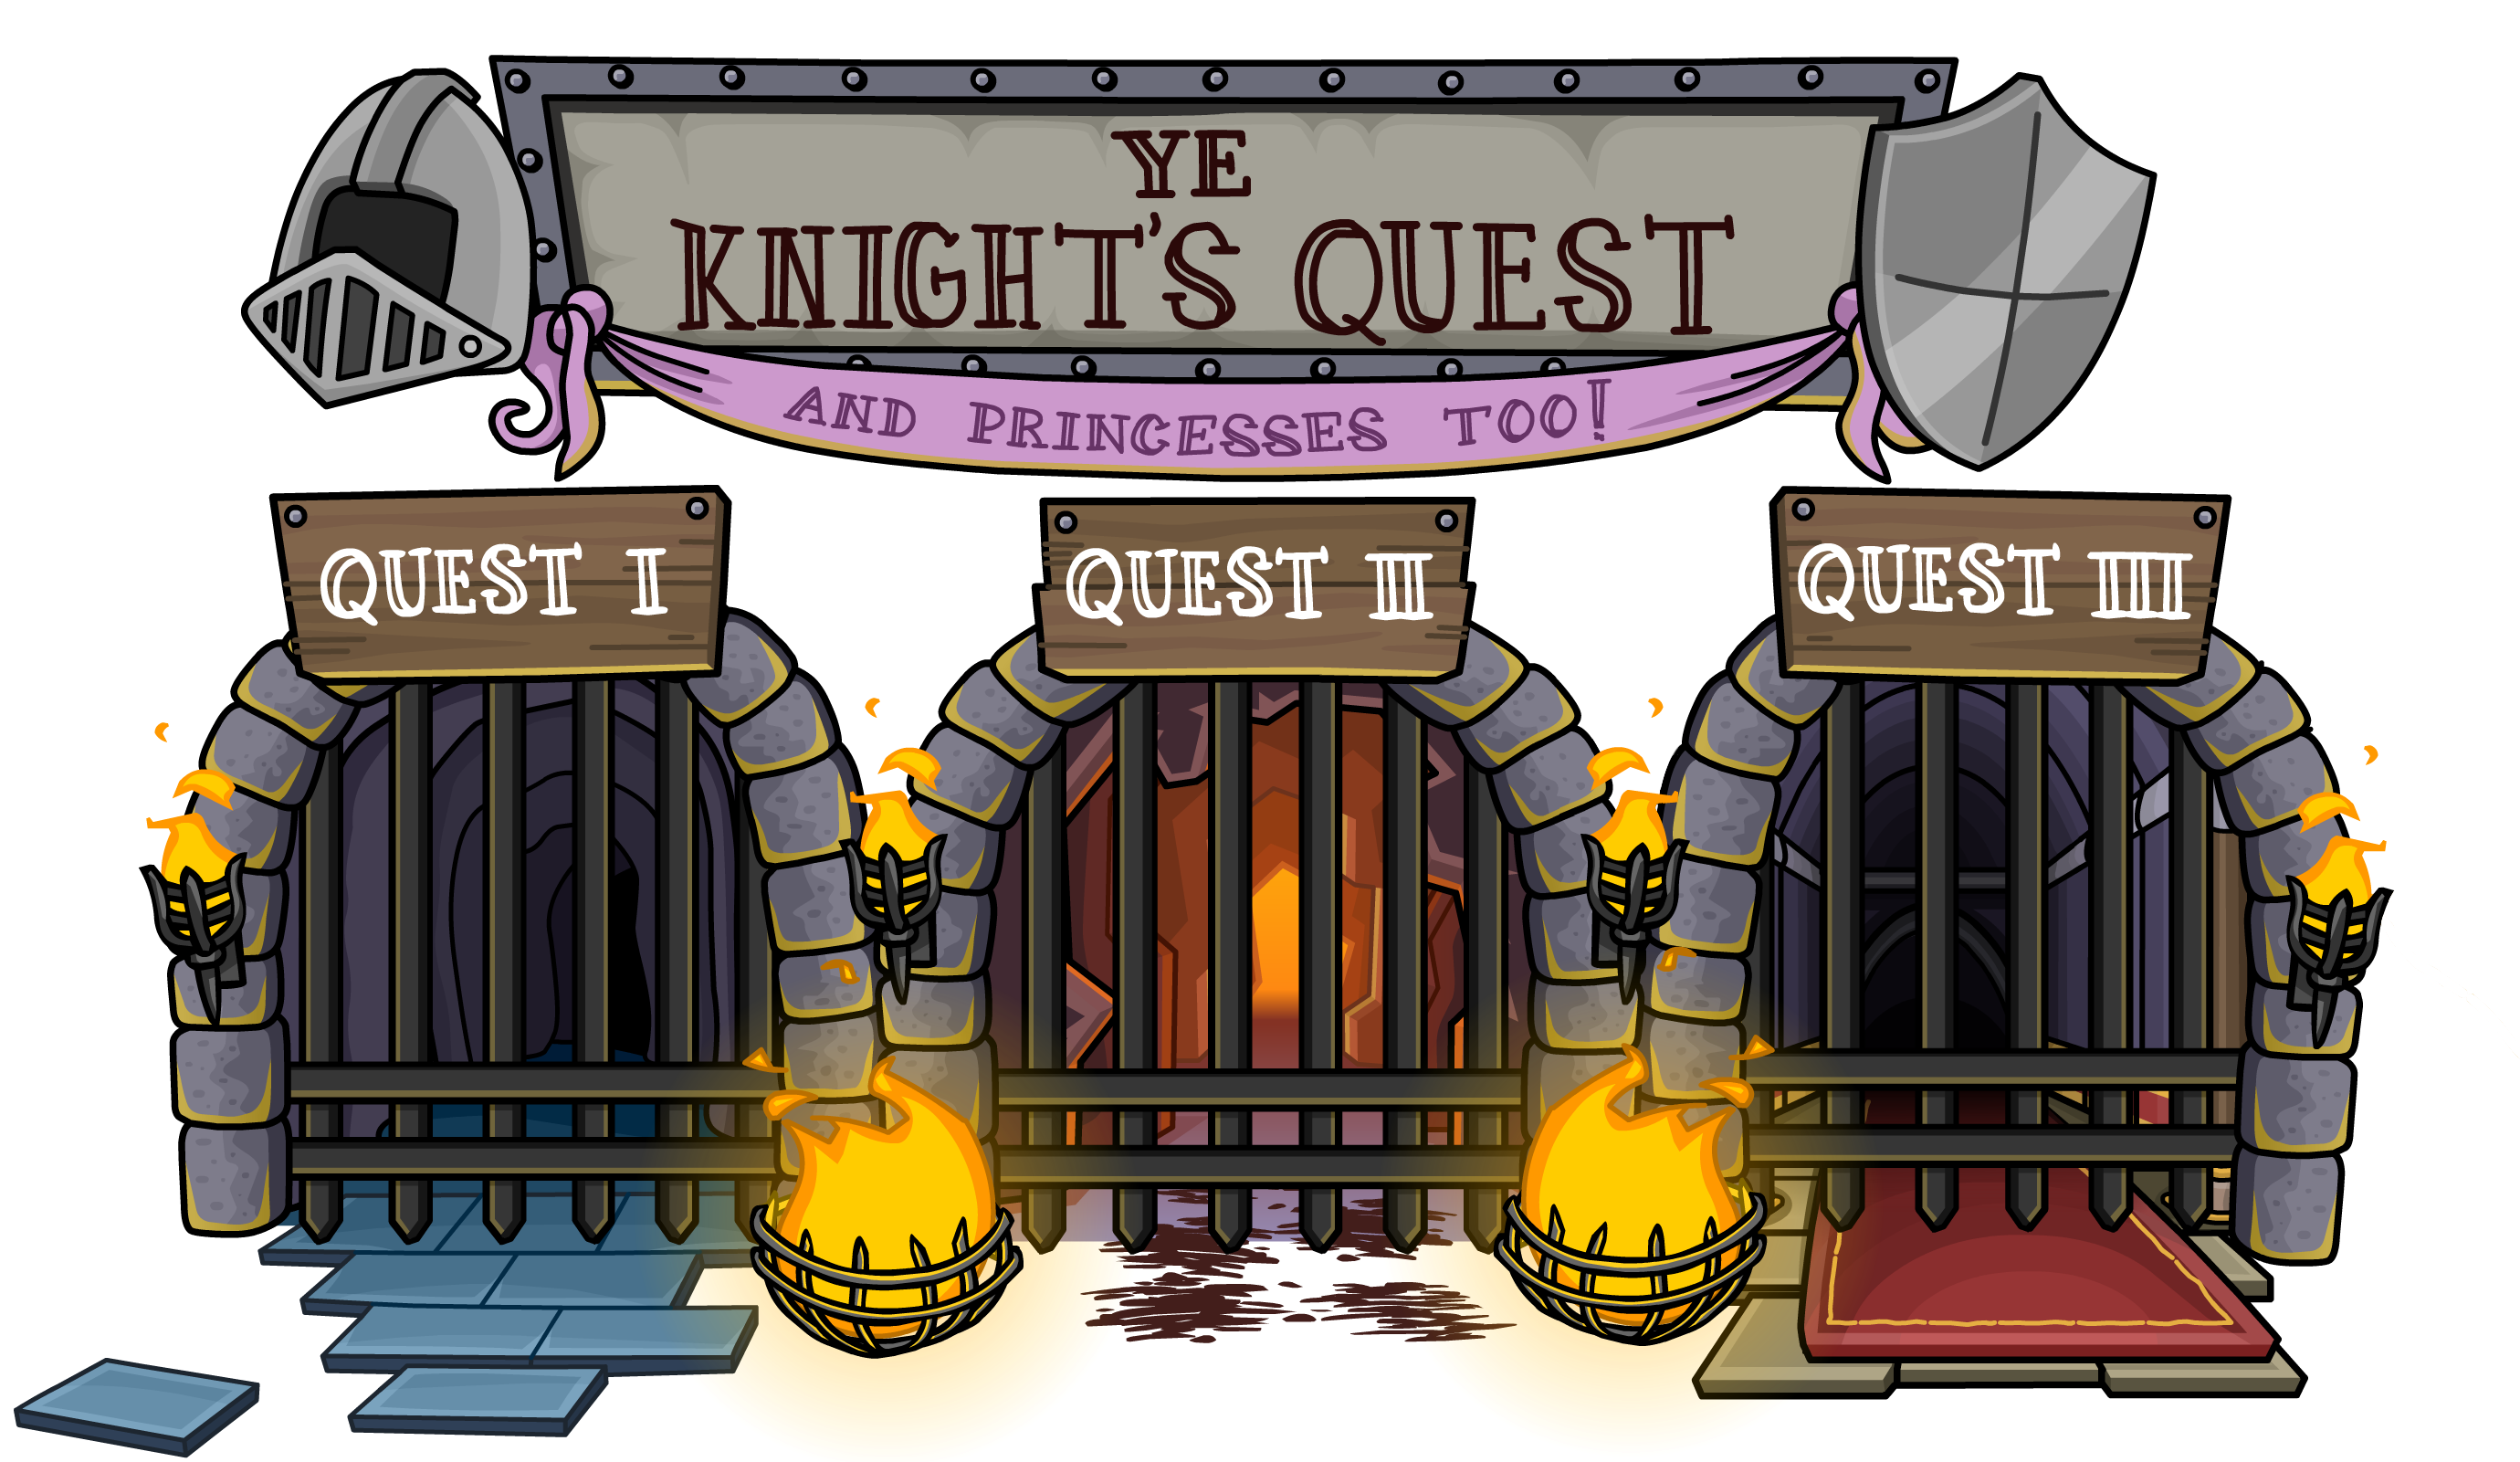 Ye Knight's Quest (disambiguation)